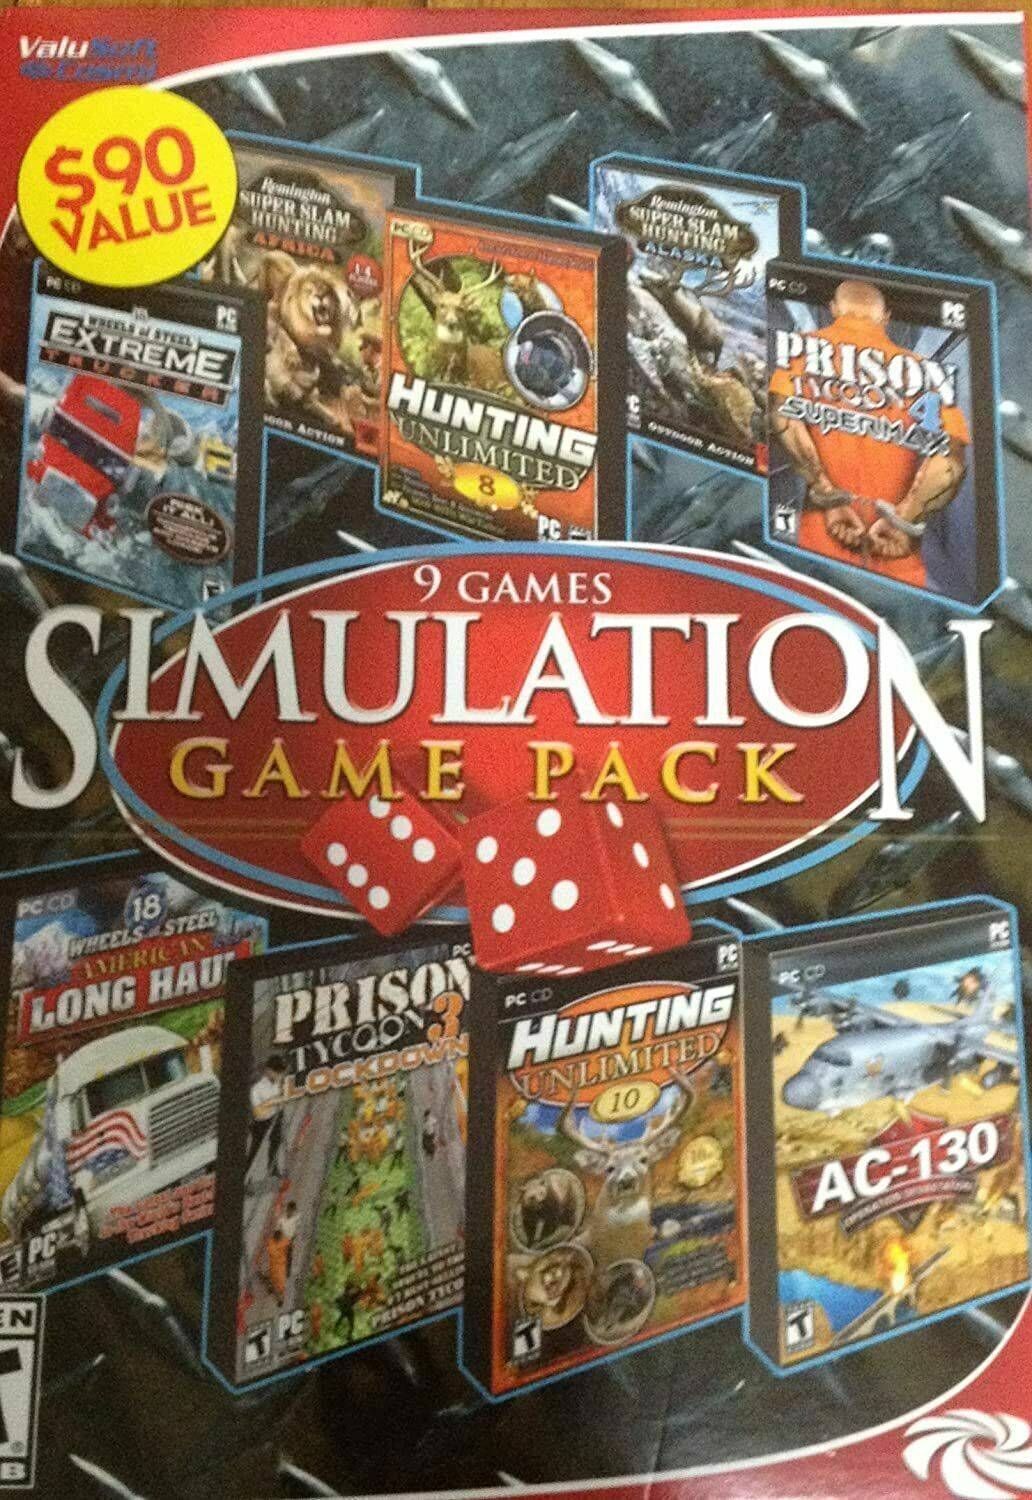 Computer Games - 9 Games Simulation Game Pack PC Games Windows 10 Sealed Computer Games Sim Pack